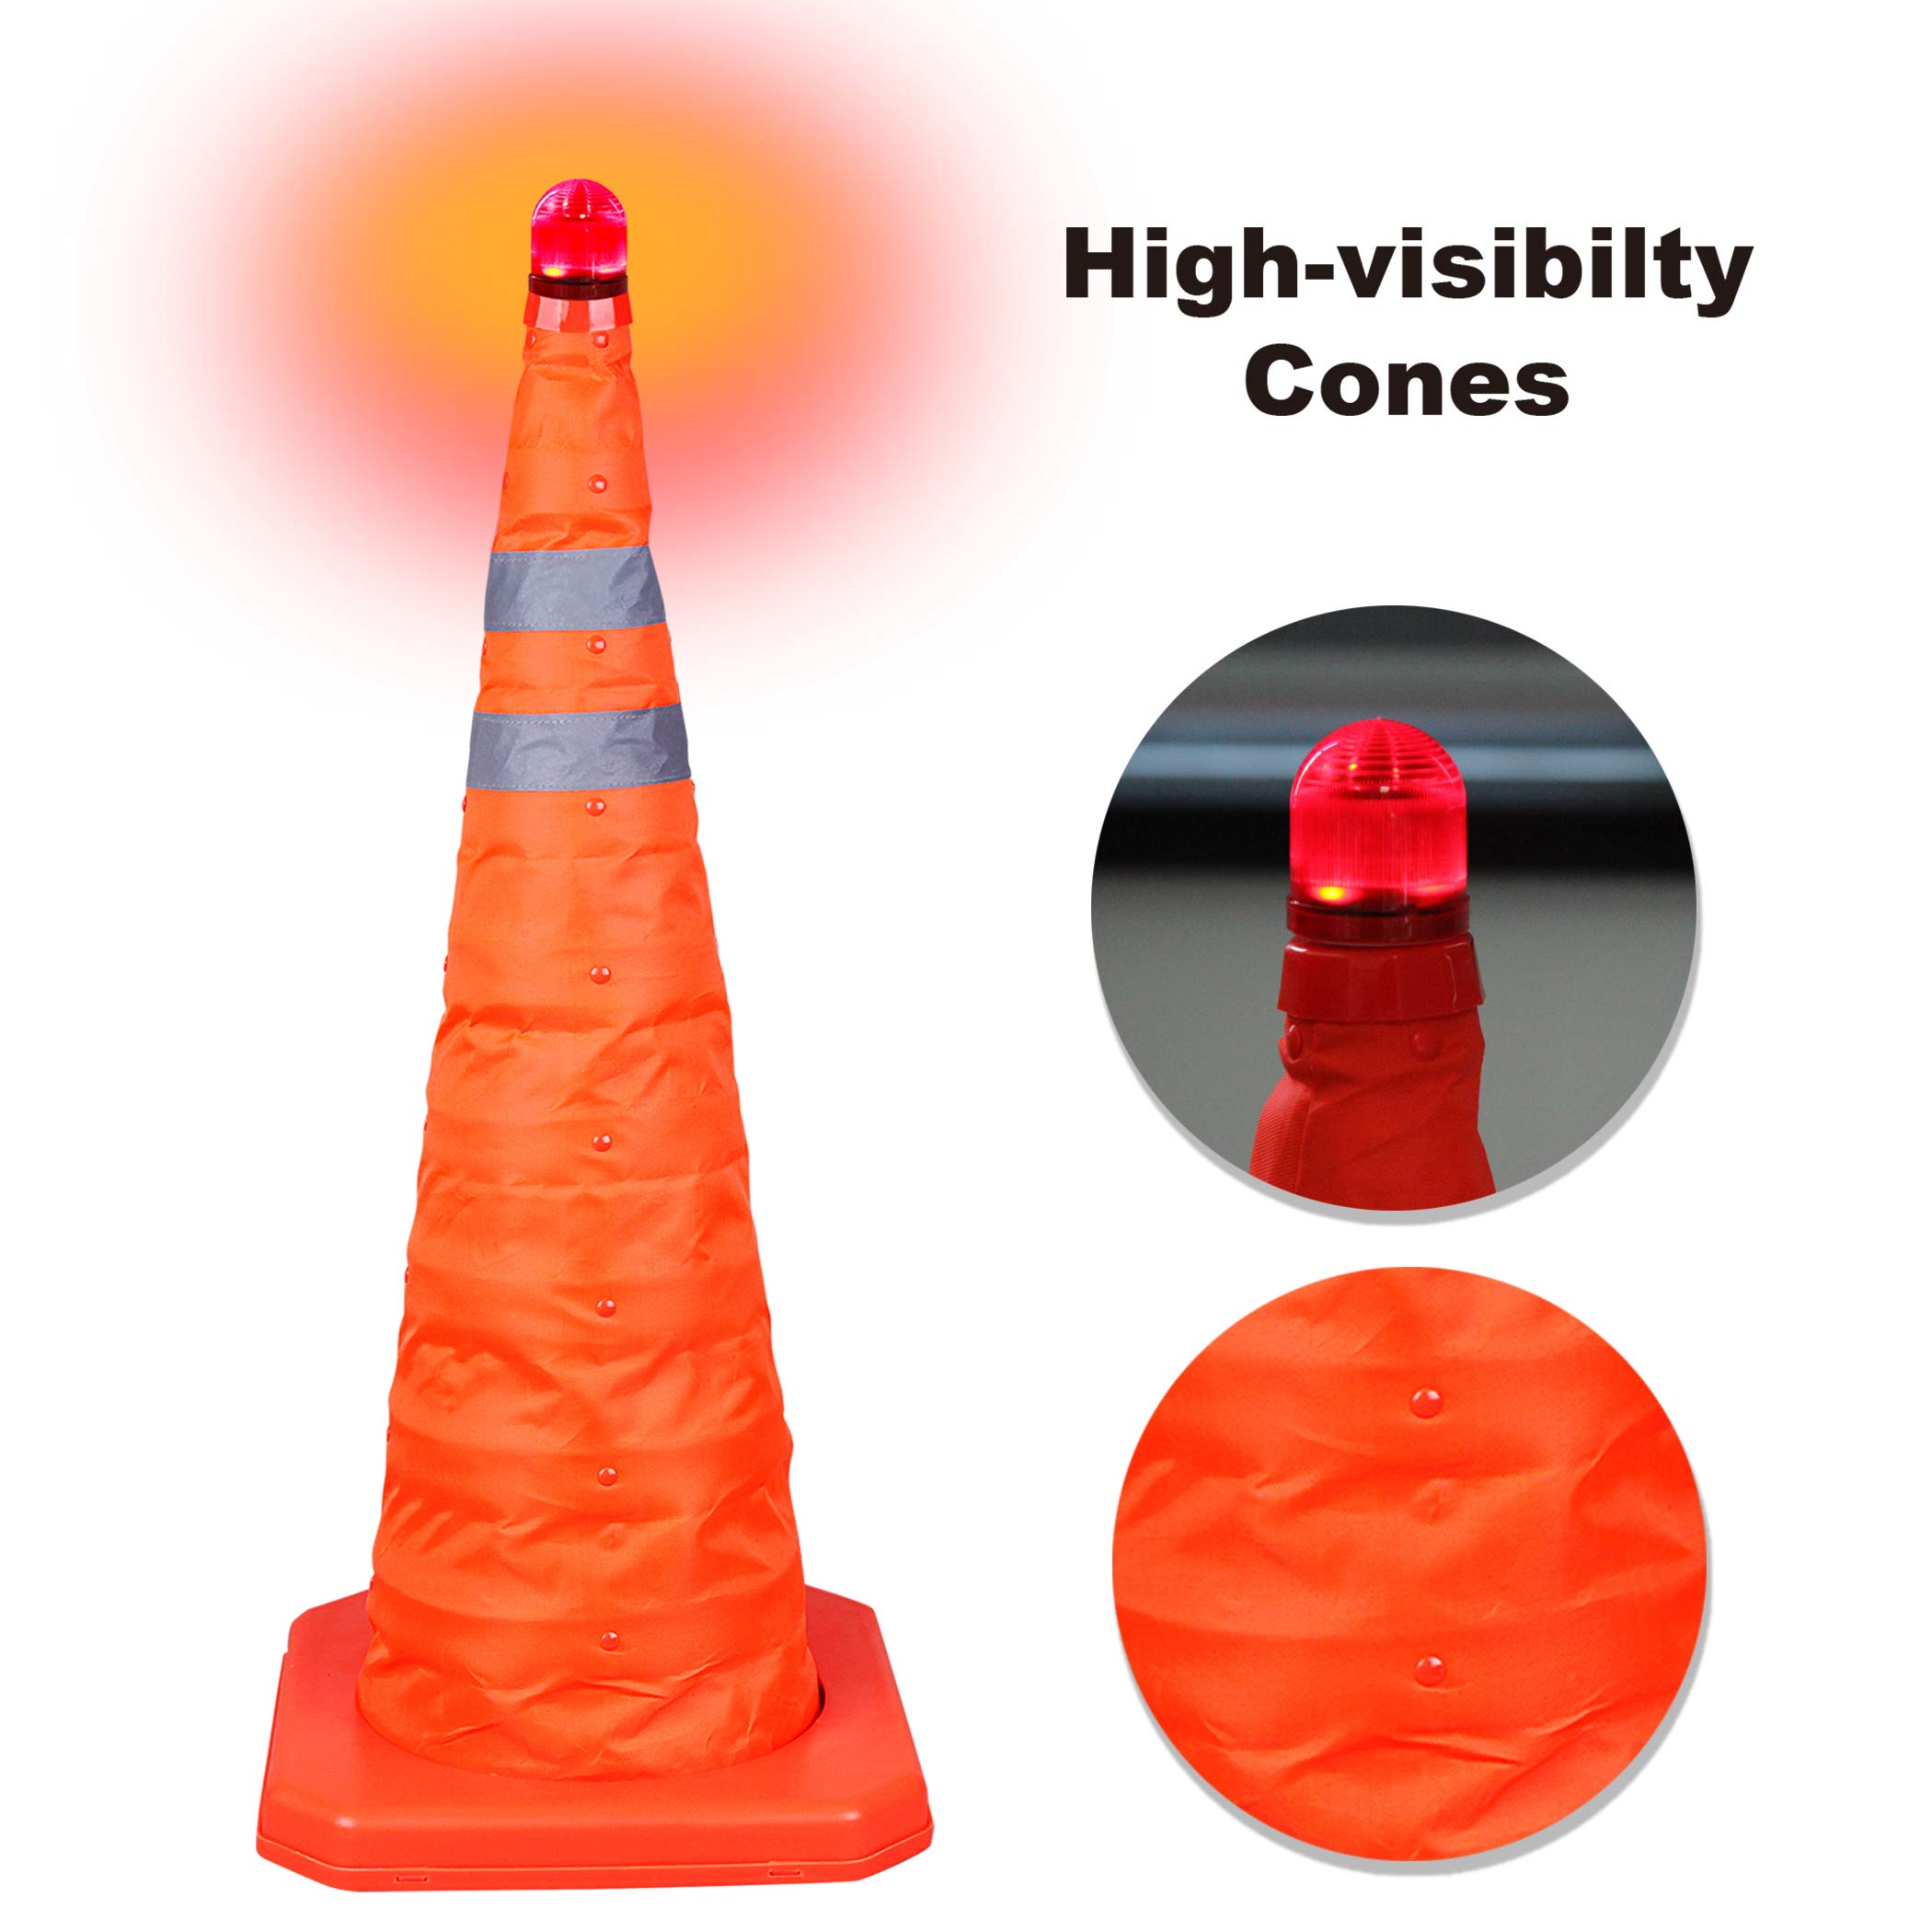 CARTMAN 27.5 inch Collapsible Traffic Cones with LED Light Multi Purpose Pop up Reflective Safety Cone 4PK by CARTMAN (Image #3)